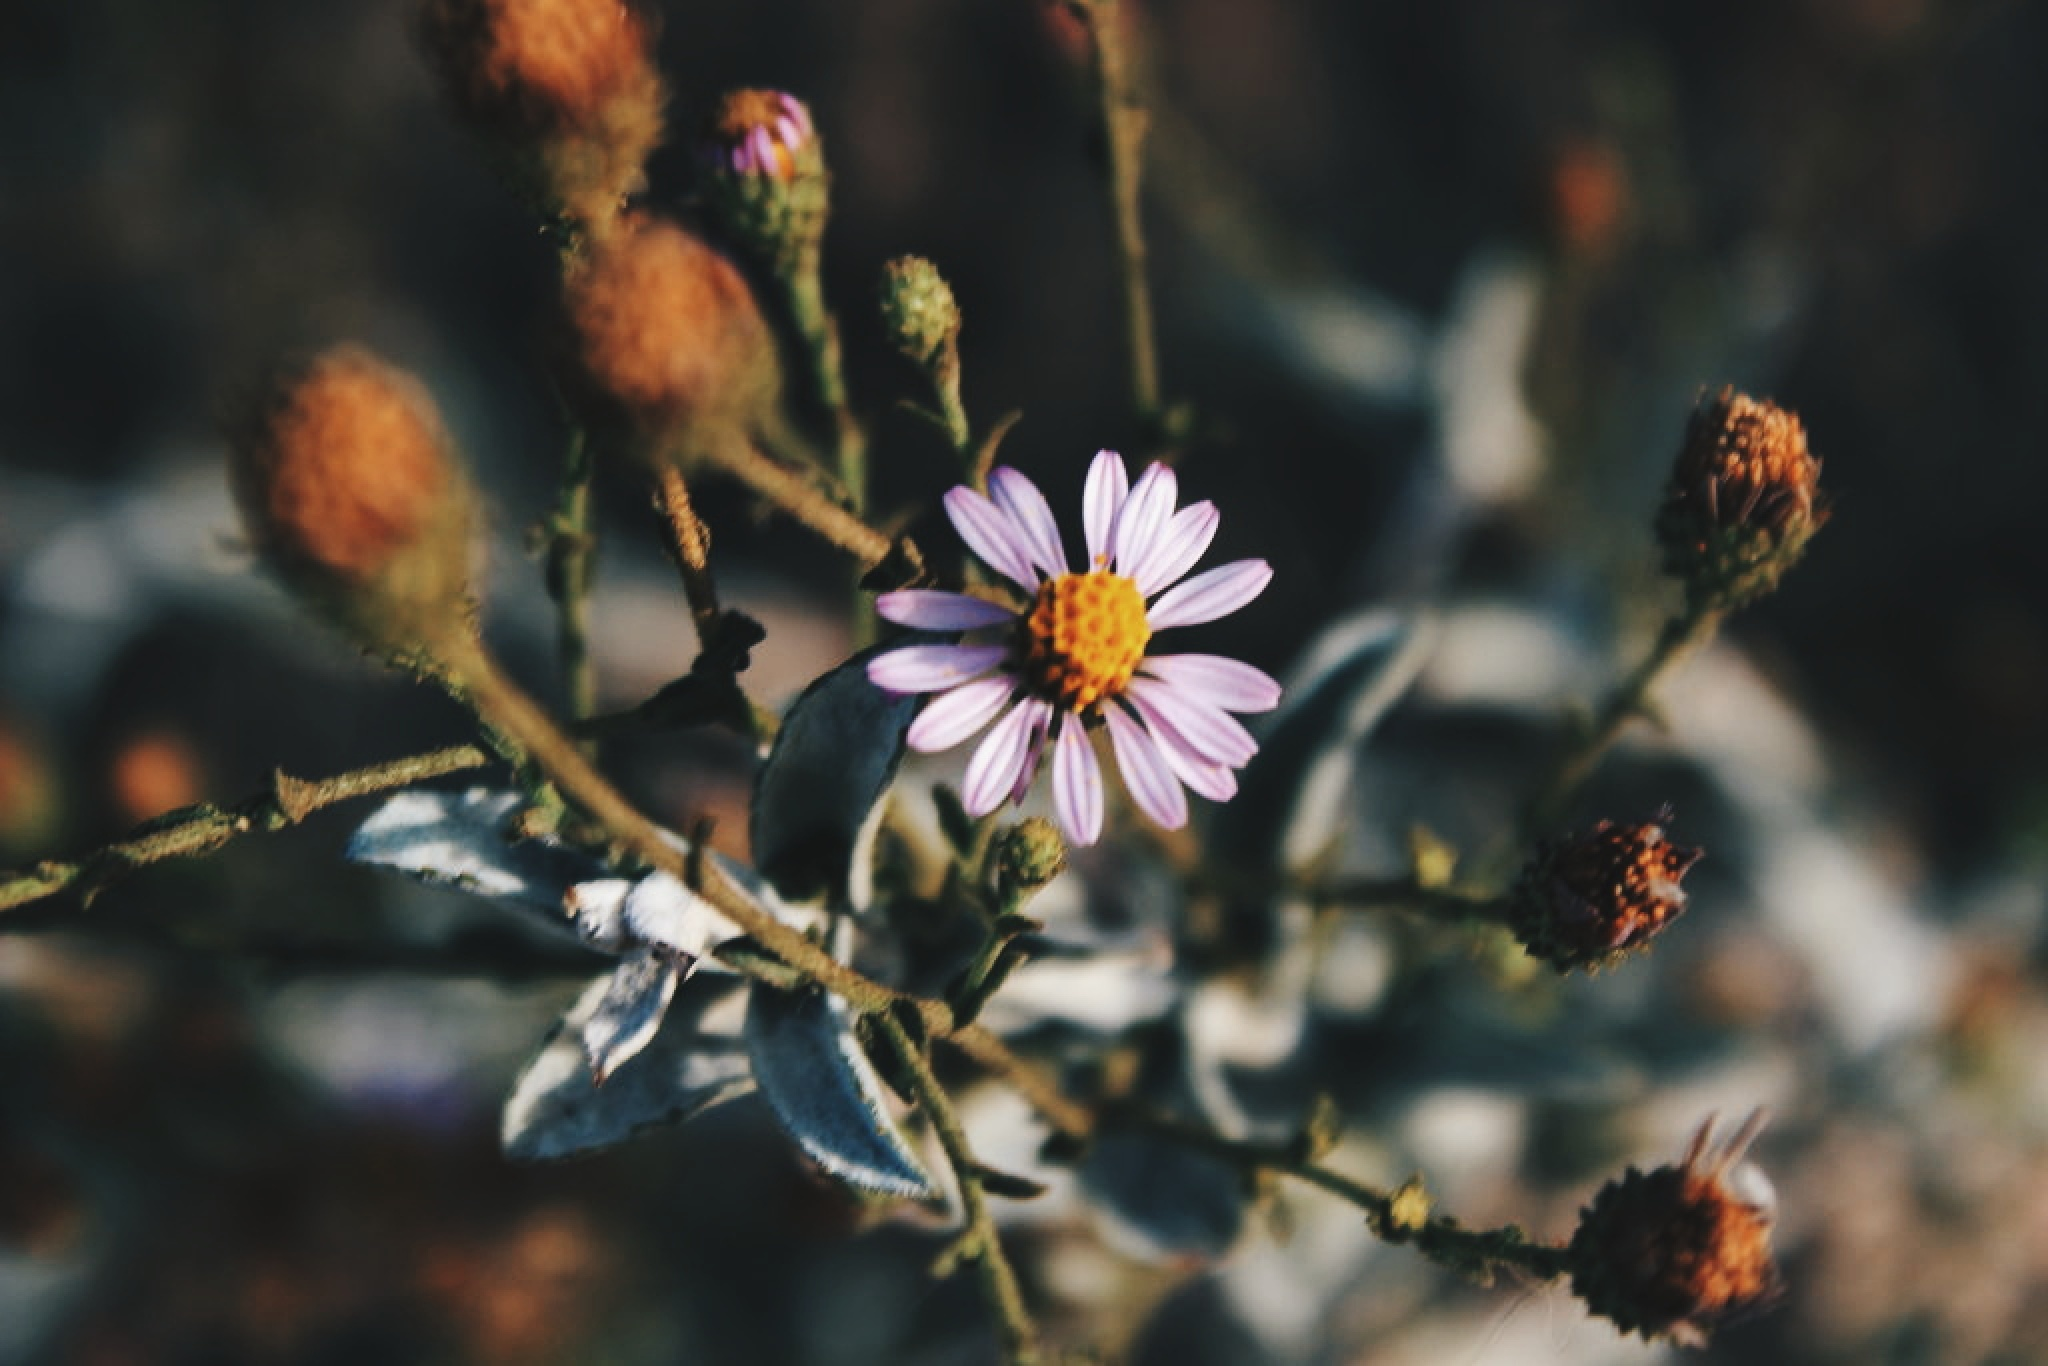 Wildflower by Thepieholephotography